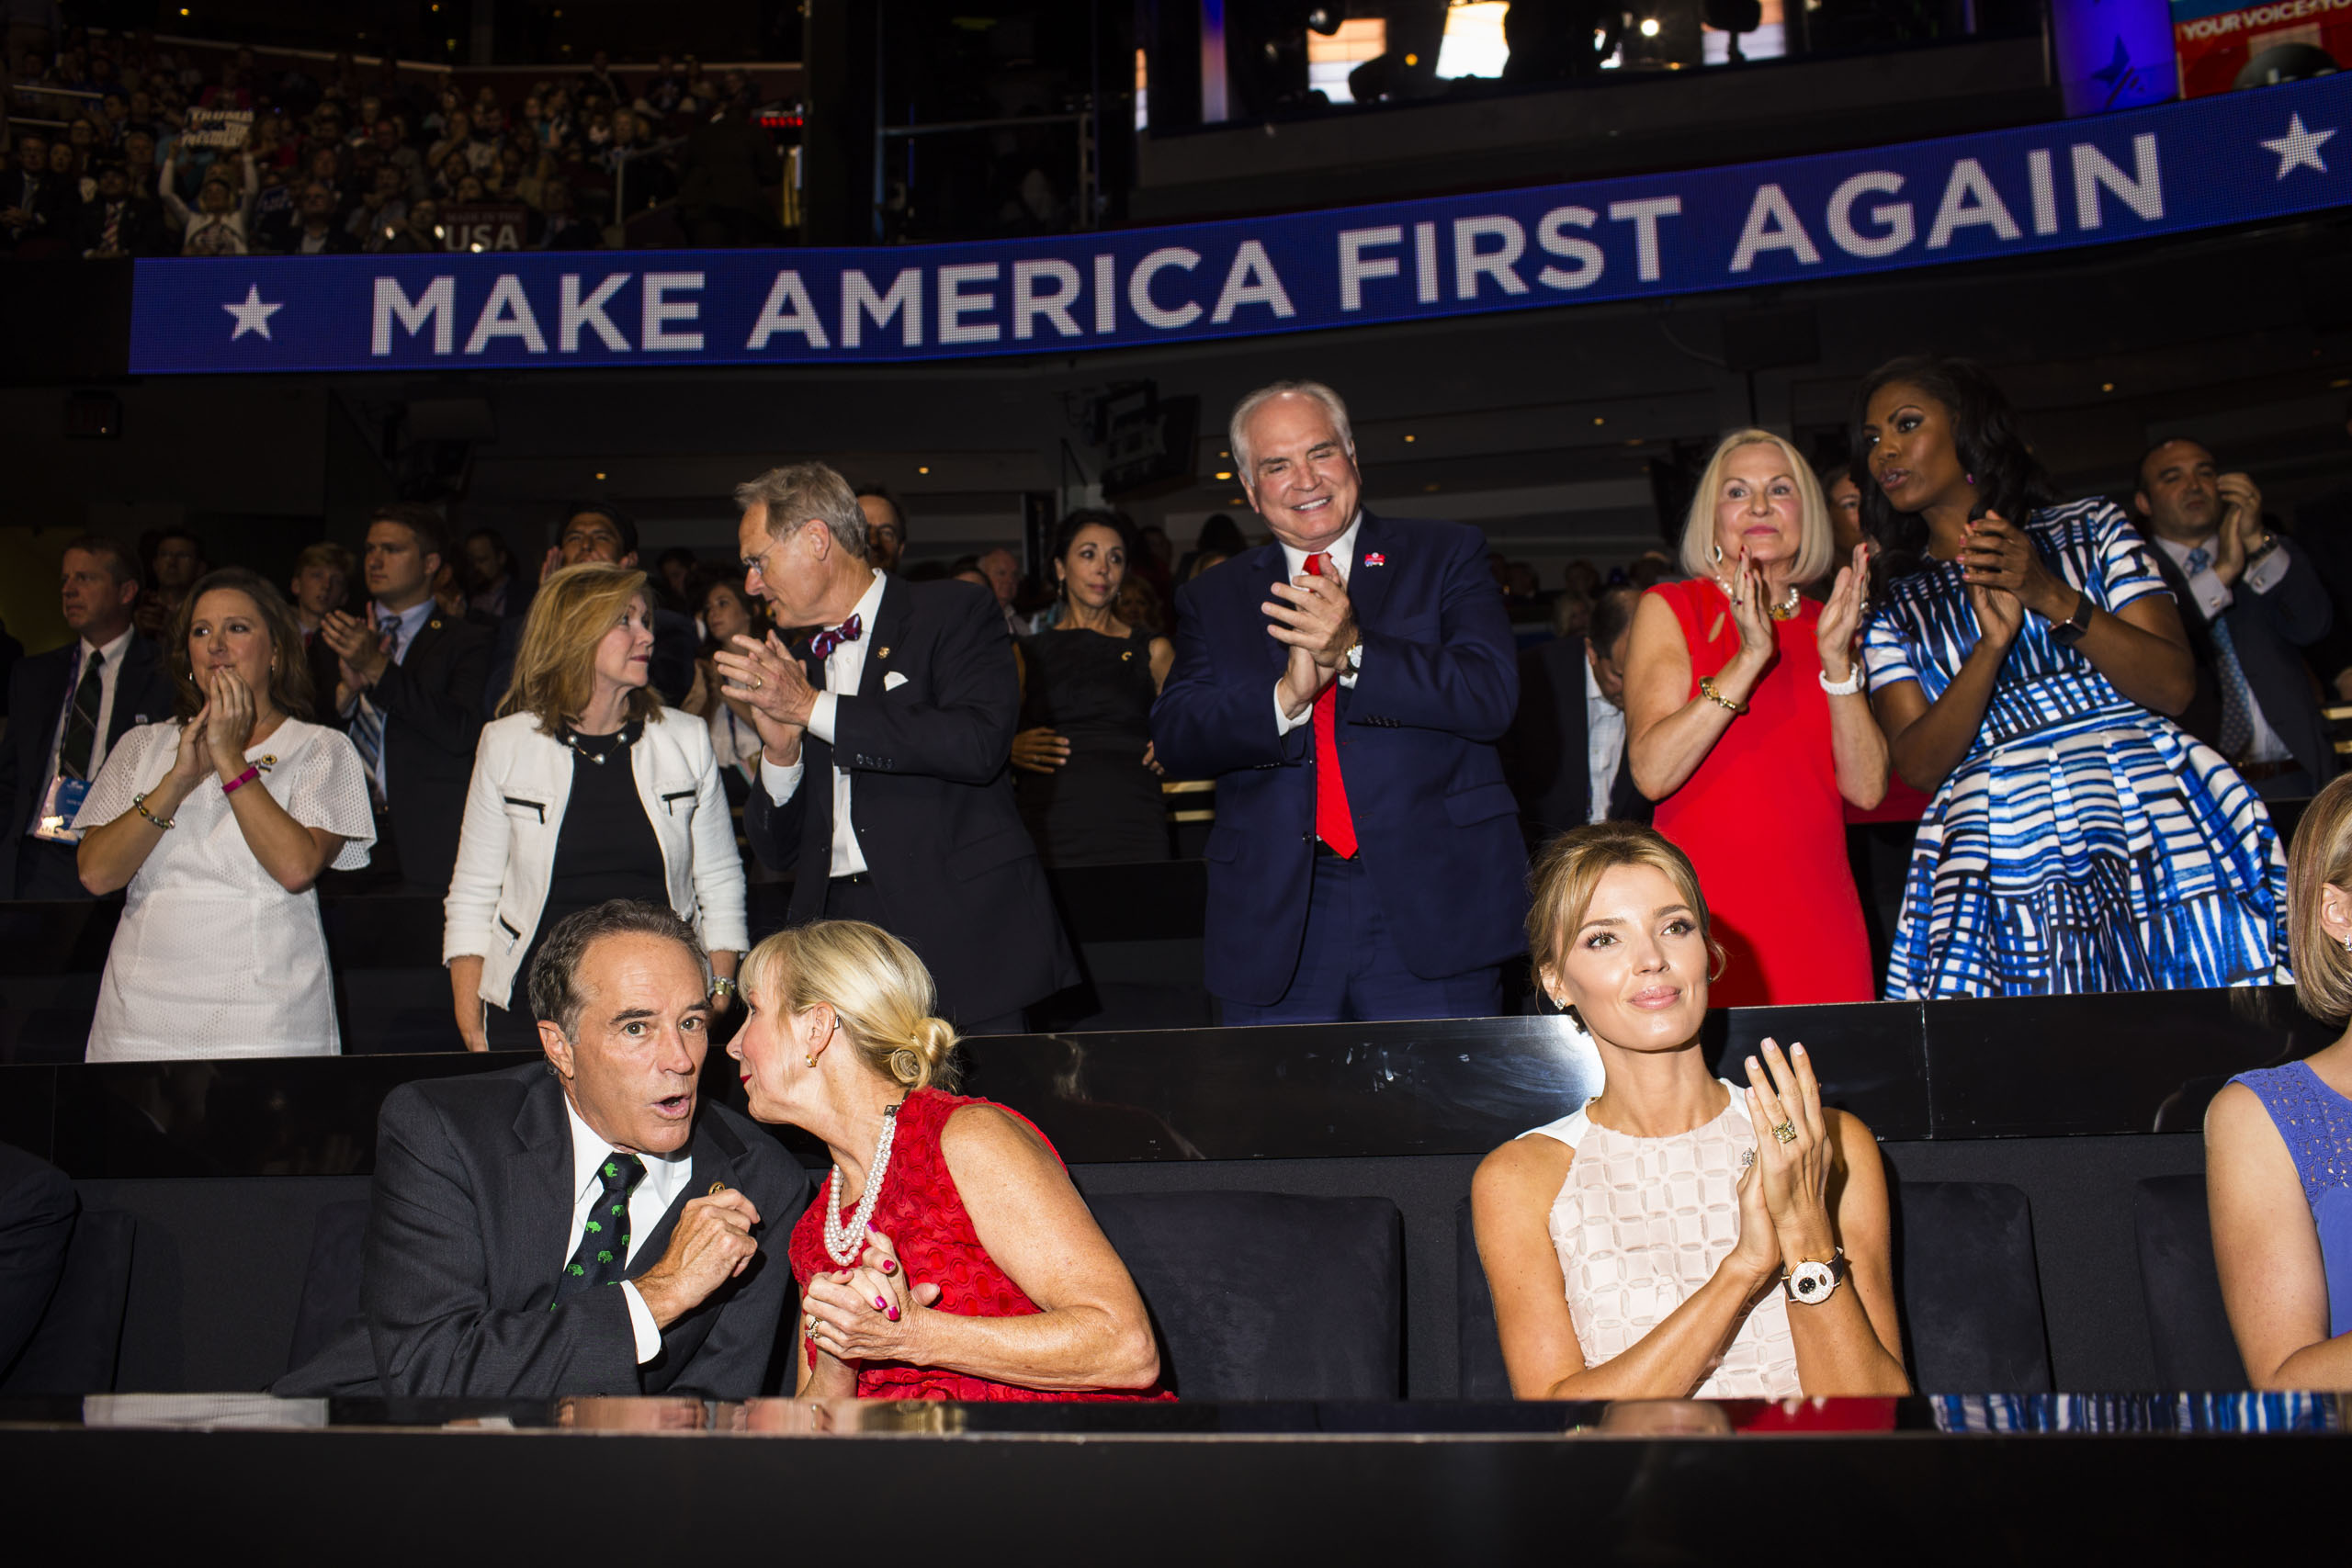 Scenes from the floor at the 2016 Republican National Convention in Cleveland on Wednesday, July 20, 2016.